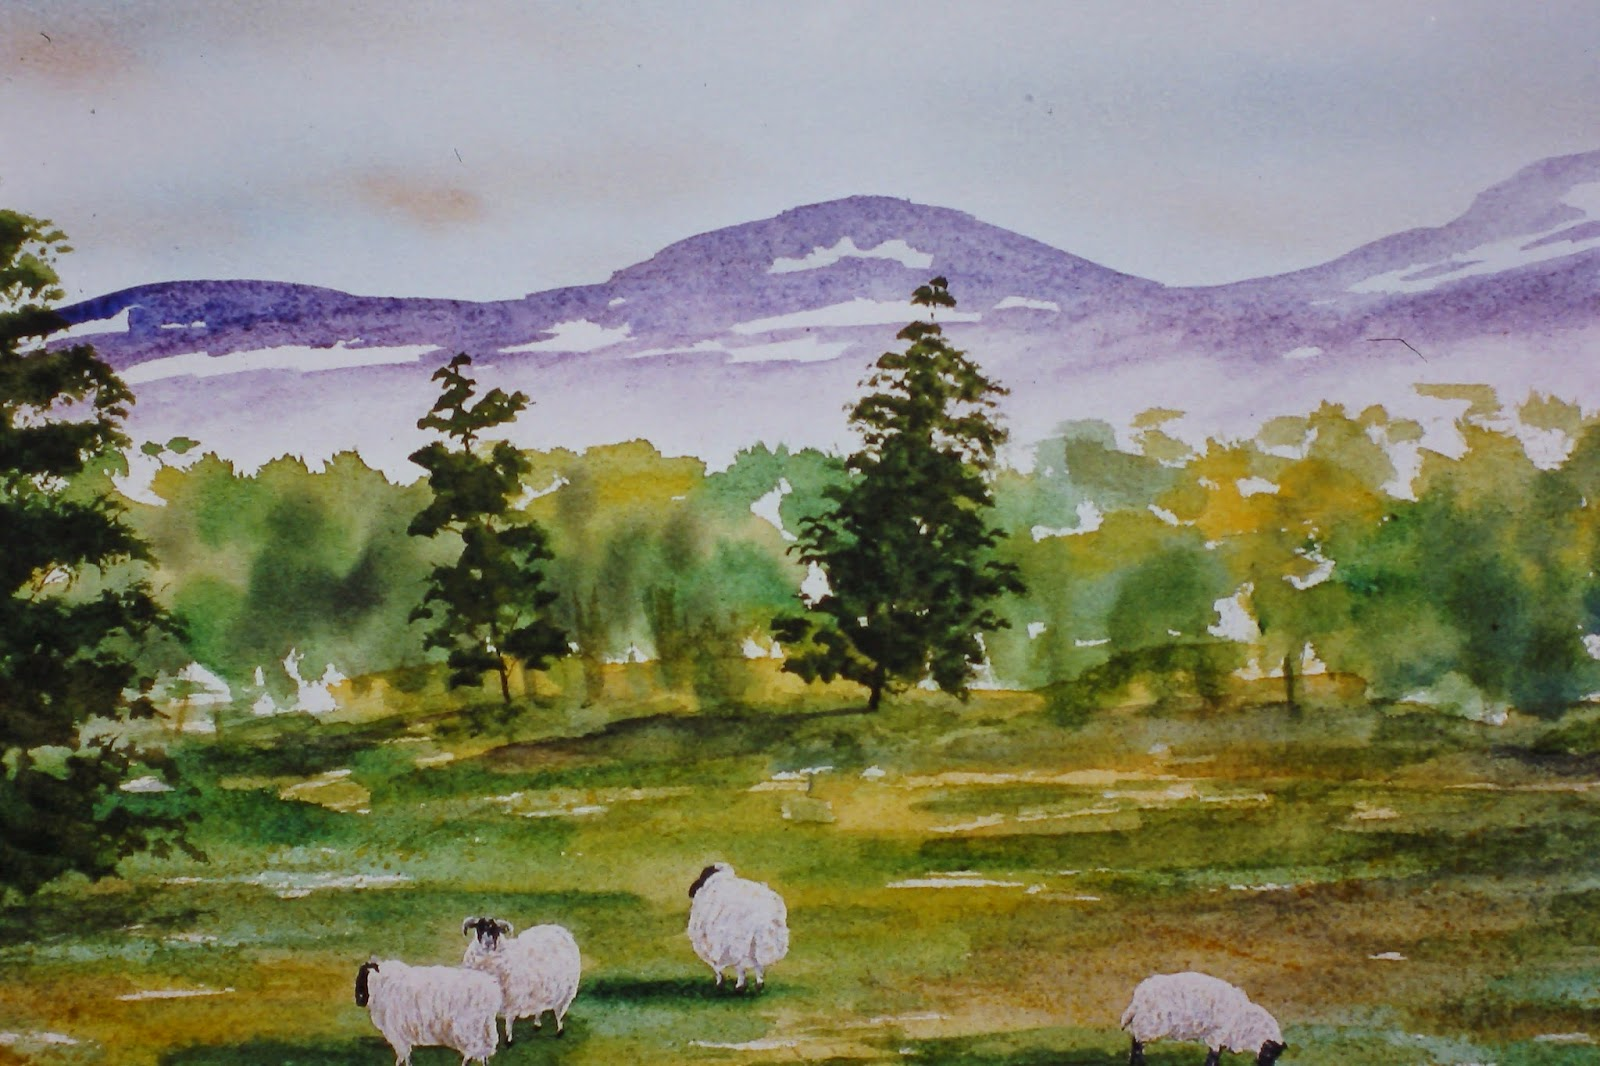 View from Little Keithock Farmhouse, near Fettercairn, Angus, Scotland  28x40 inches. Watercolor on paper, c. 1992.  In a private collection in Glasgow, Scotland by F. Lennox Campello